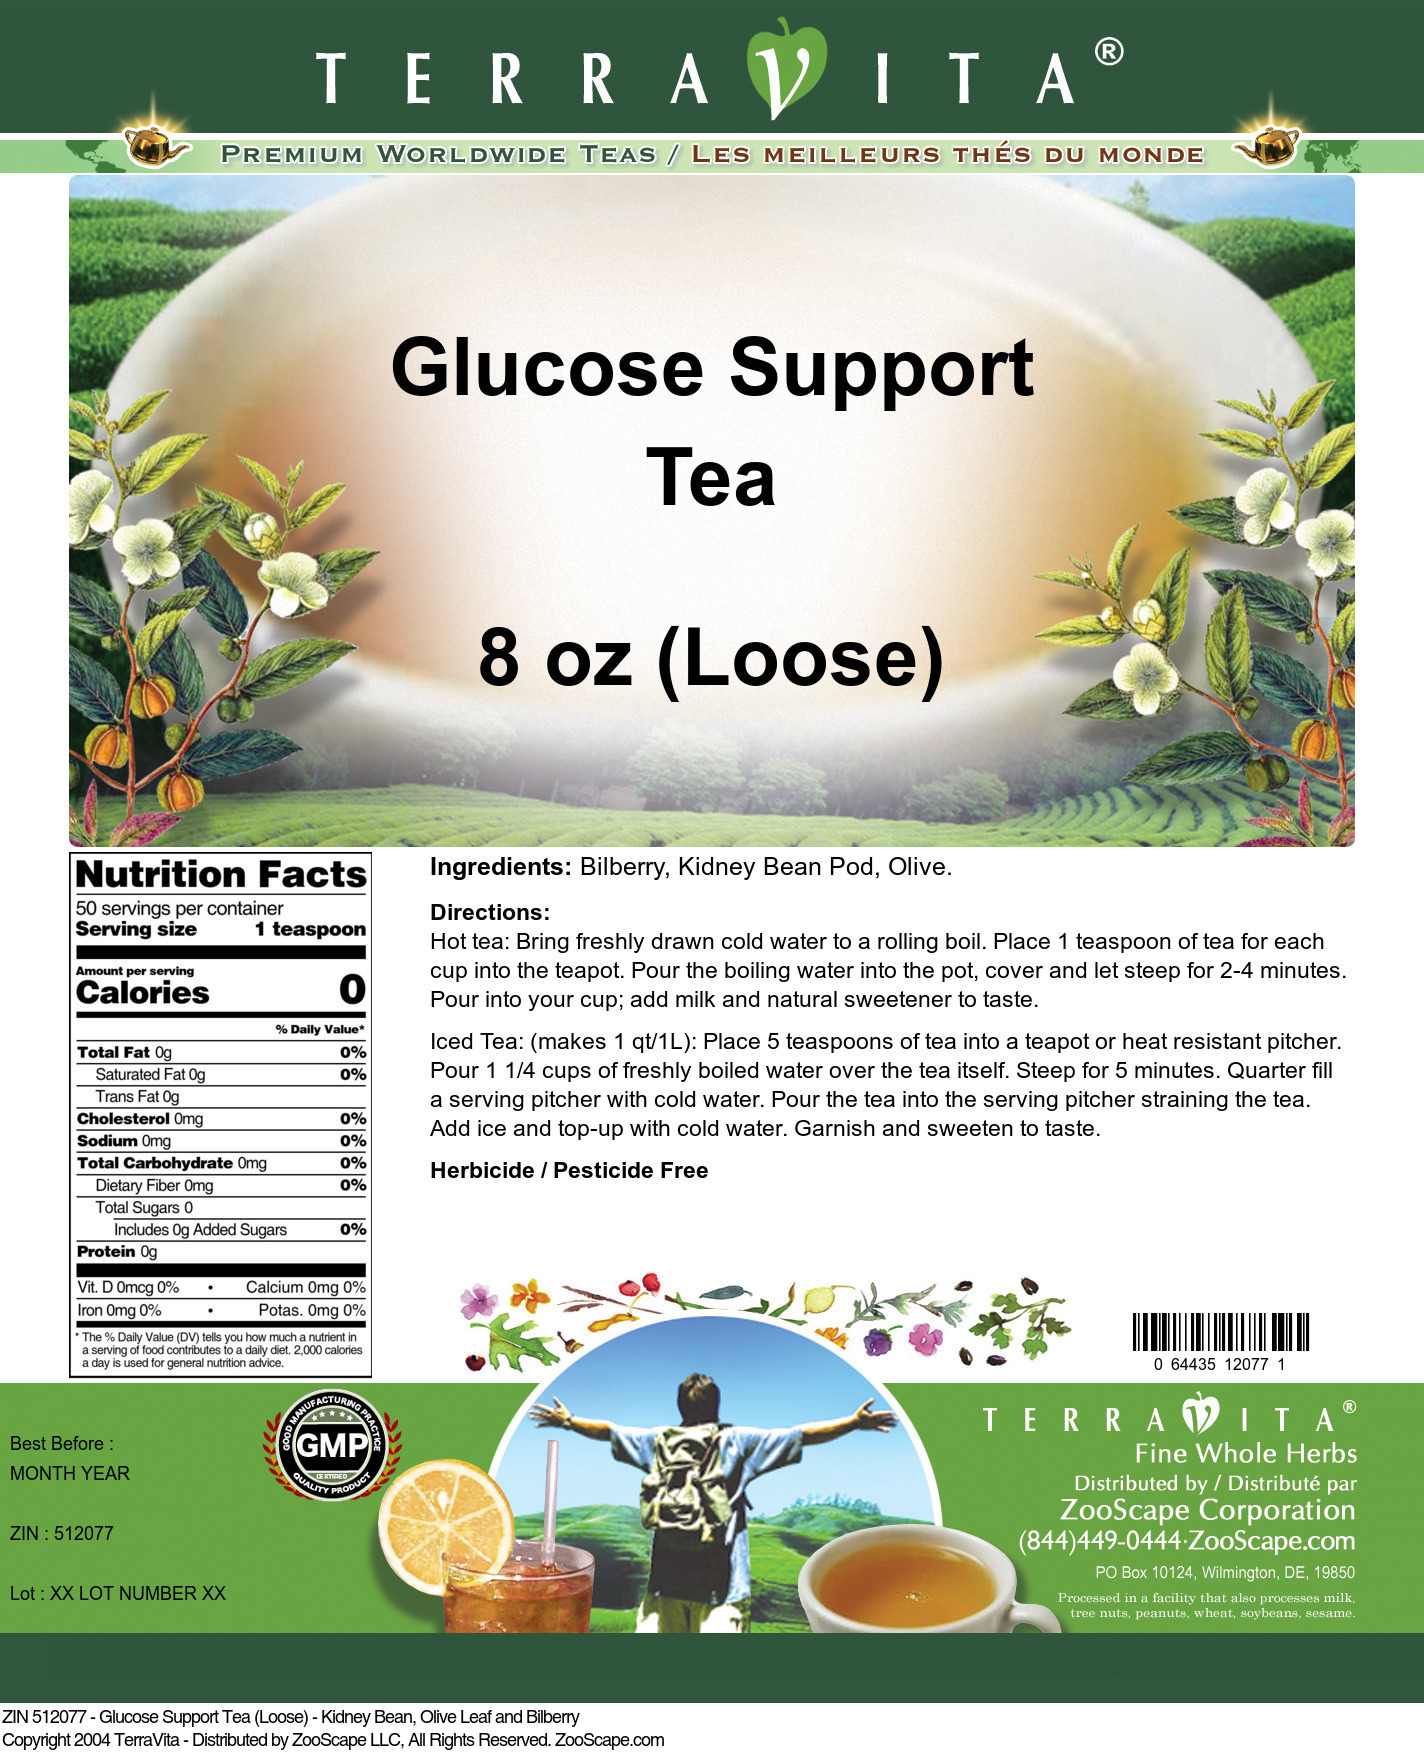 Glucose Support Tea (Loose) - Kidney Bean, Olive Leaf and Bilberry